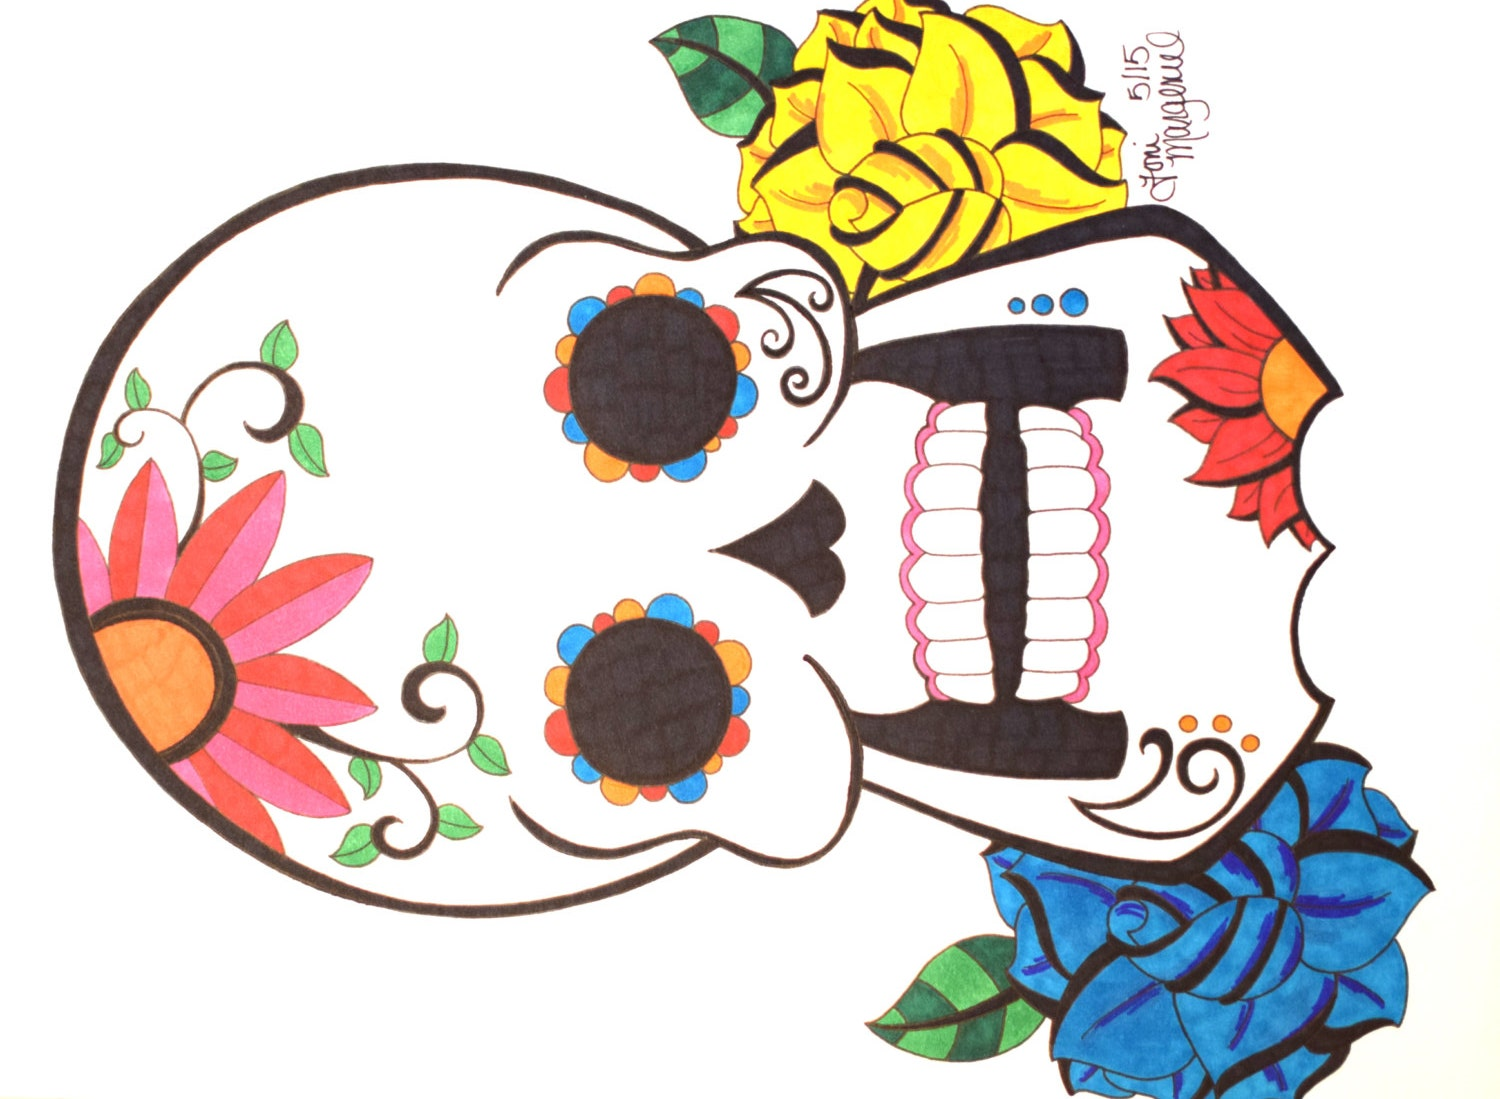 Sugar Skull Drawing Day of the Dead Artwork 9x12 inch Skull